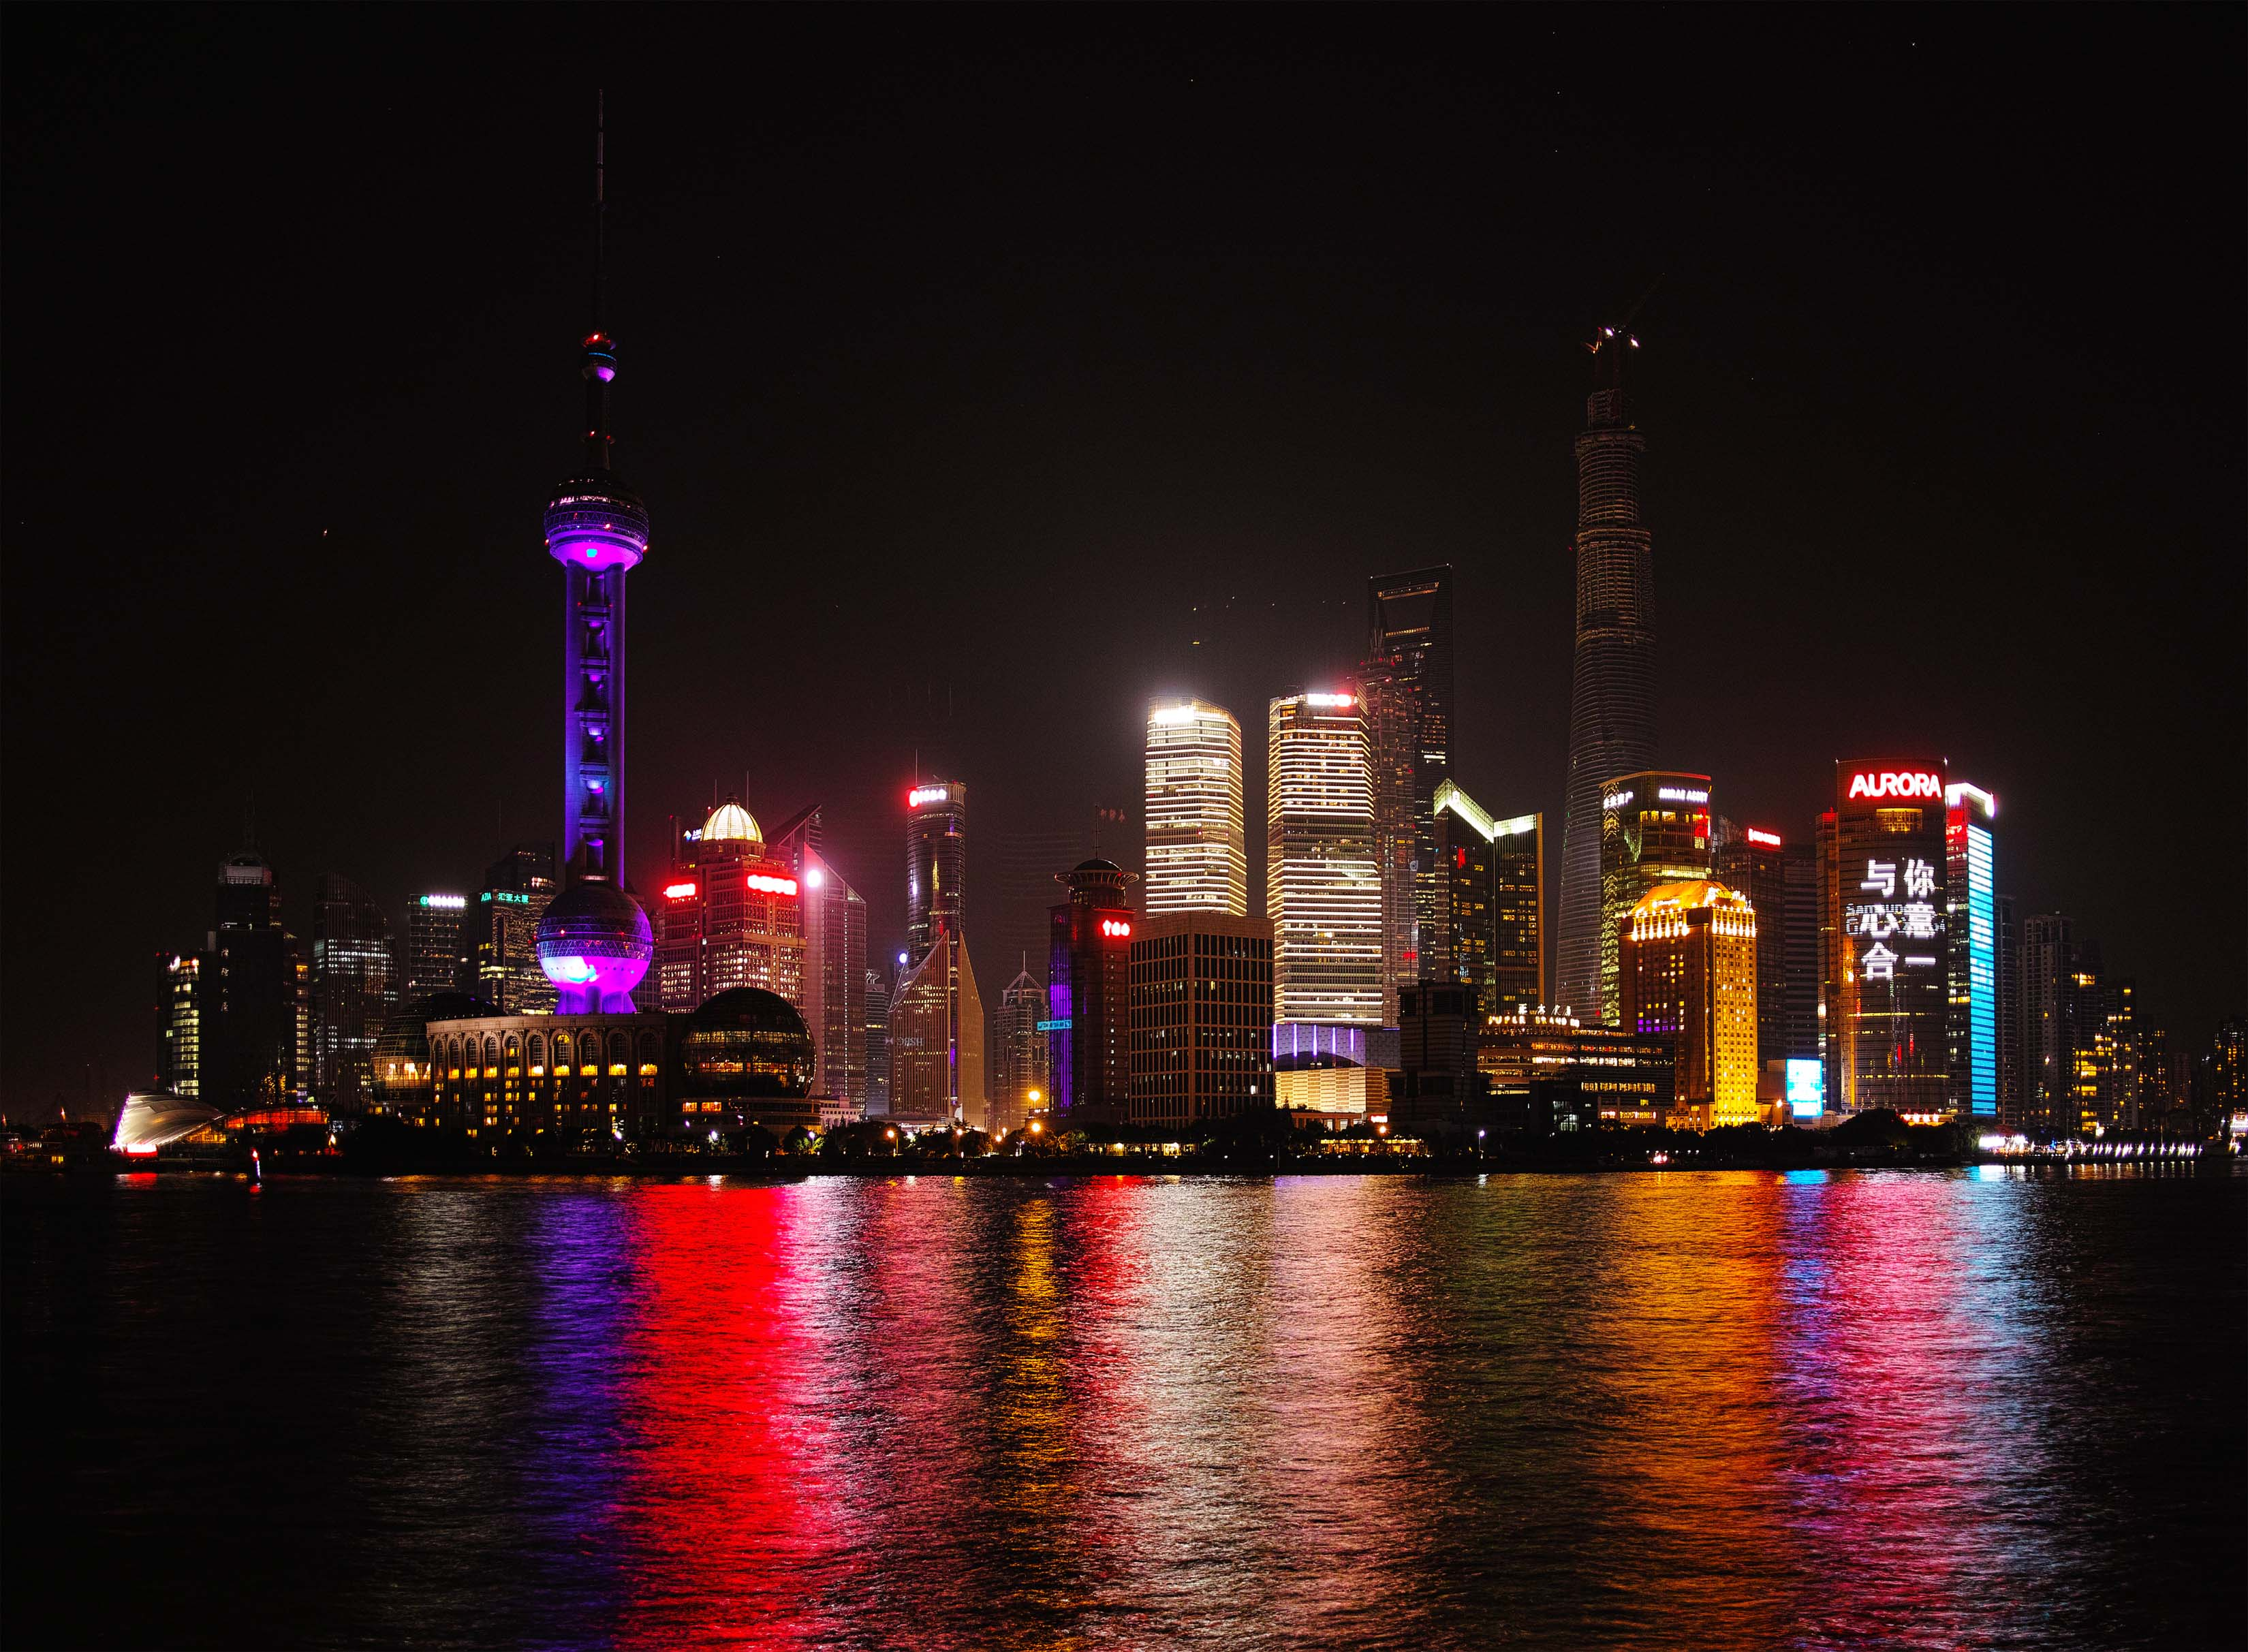 Shanghai Pudong night